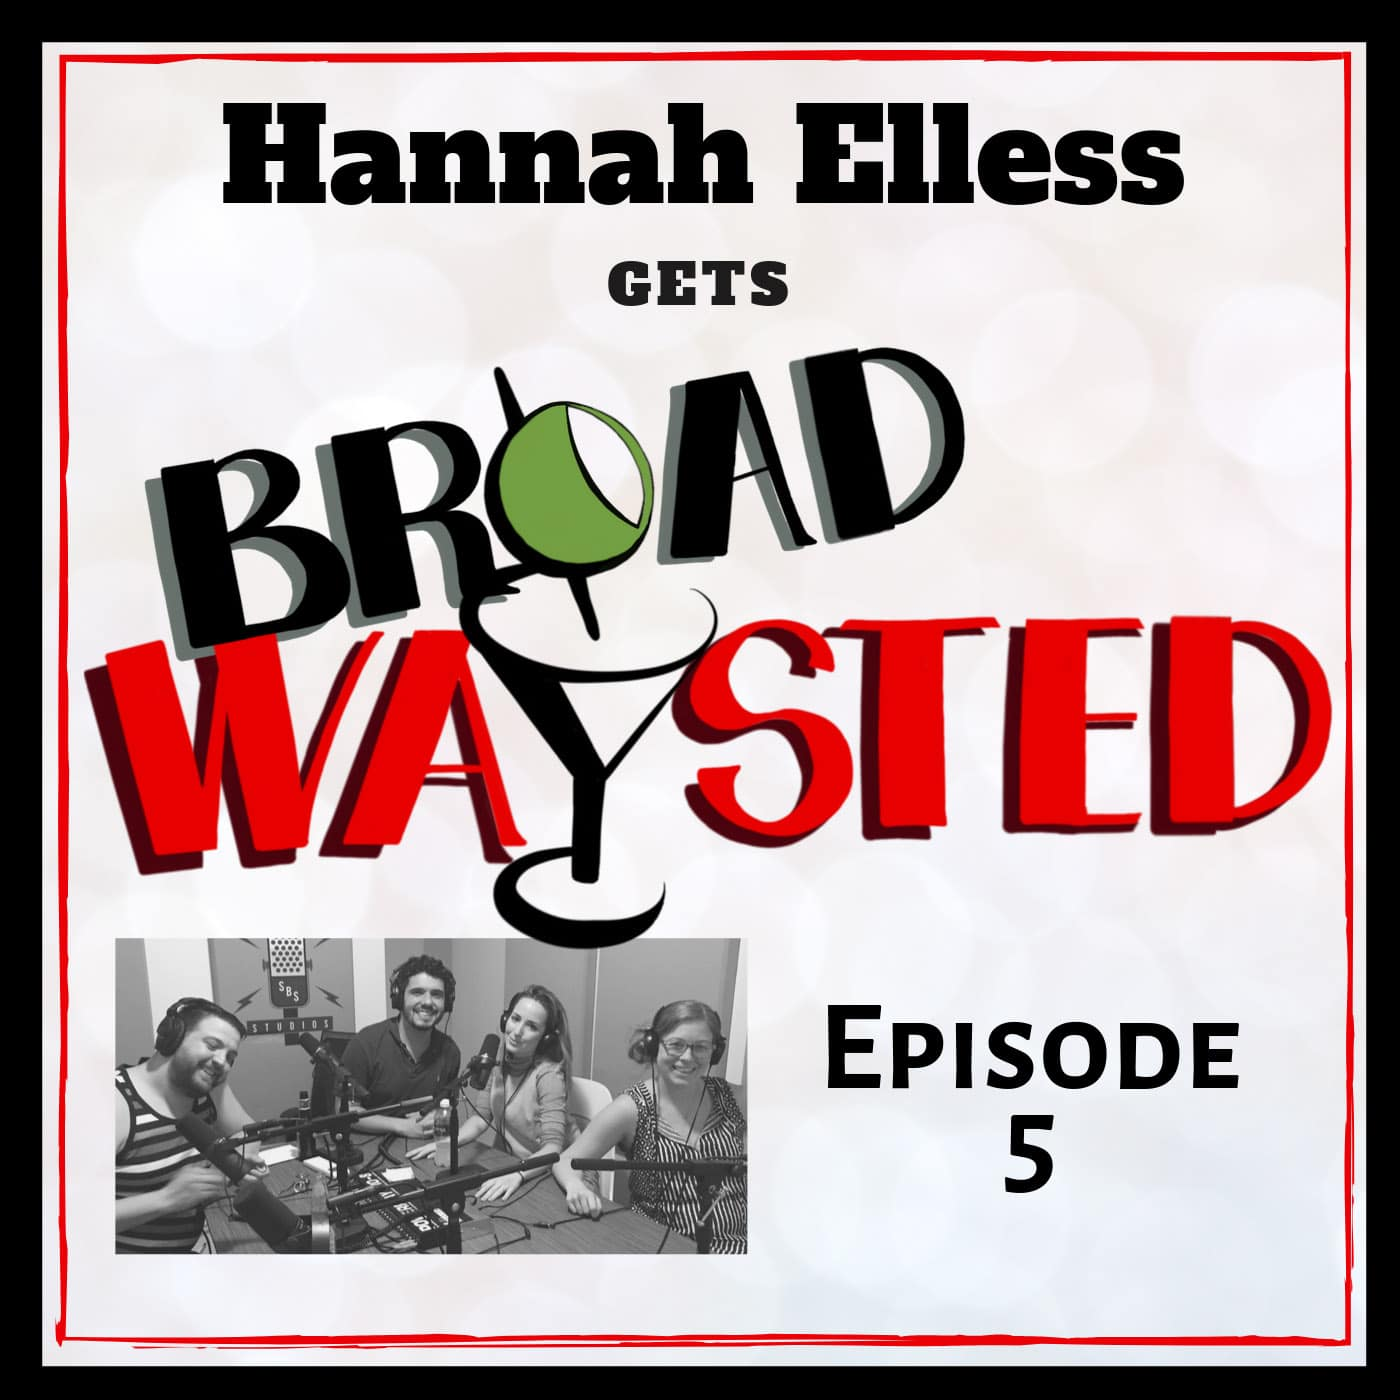 Broadwaysted Ep 5 Hannah Elless